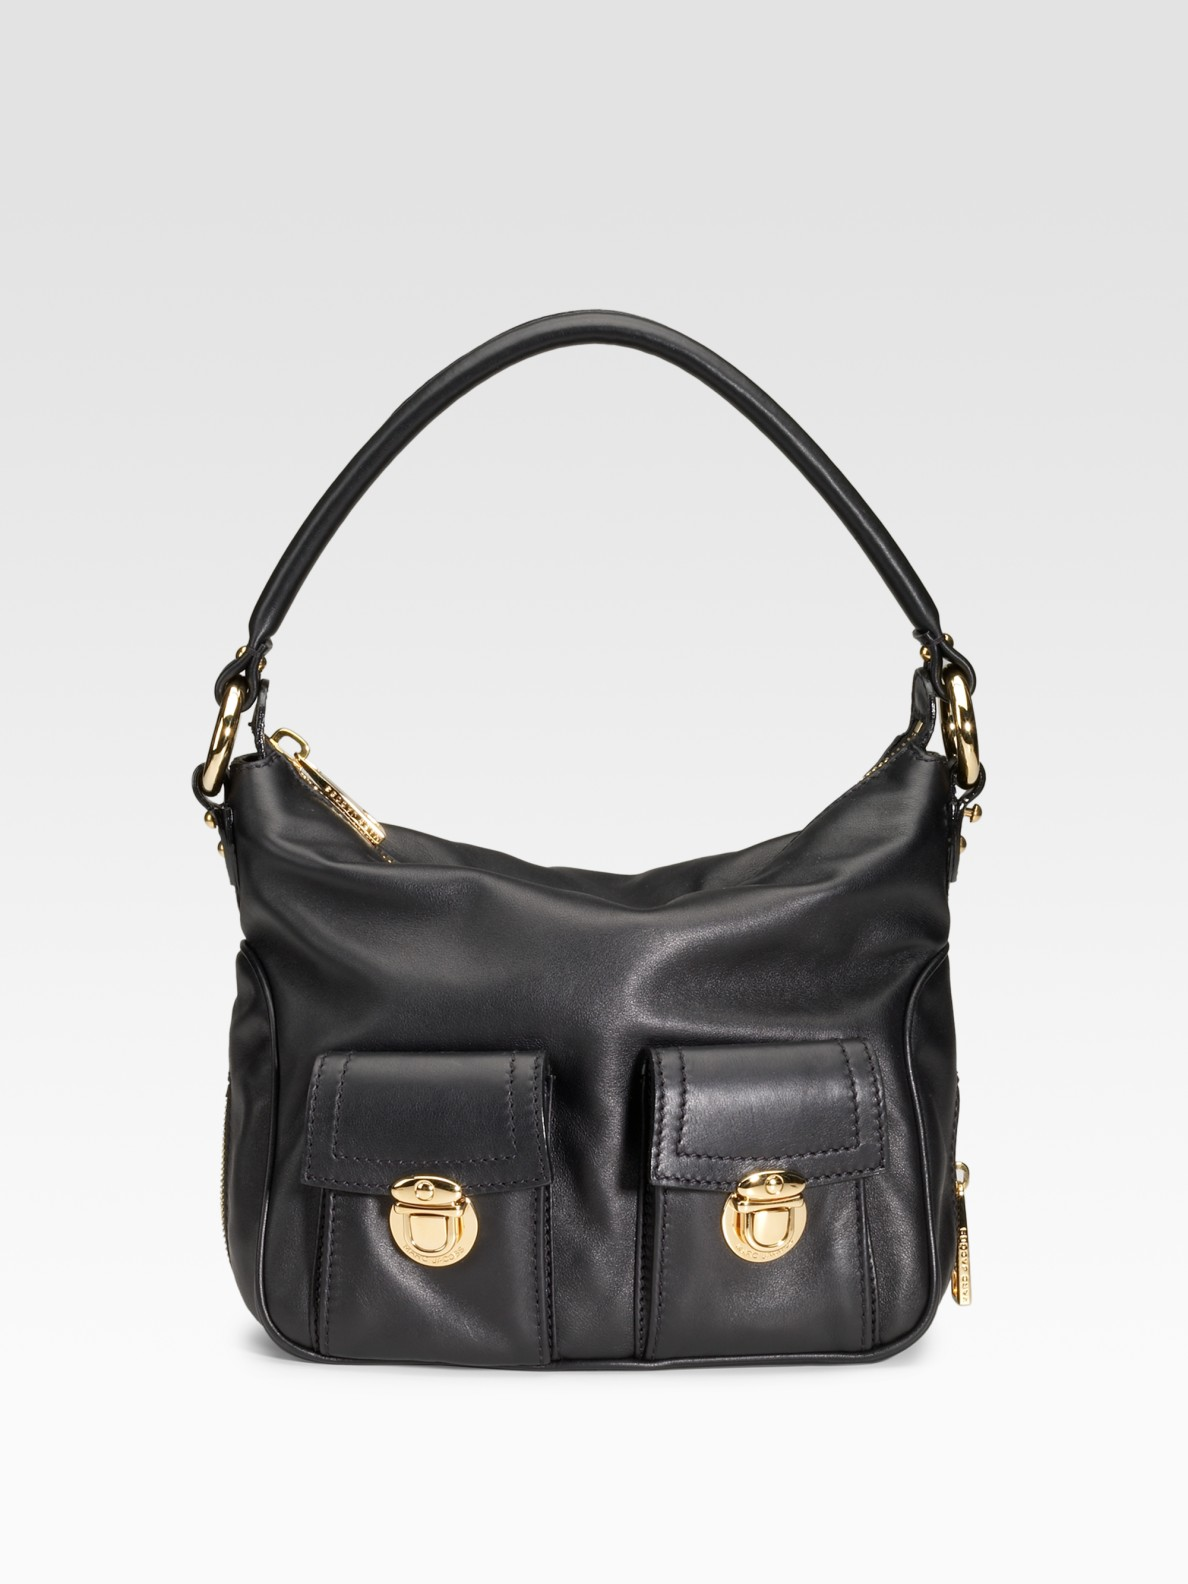 marc jacobs classic multipocket leather hobo in black lyst. Black Bedroom Furniture Sets. Home Design Ideas